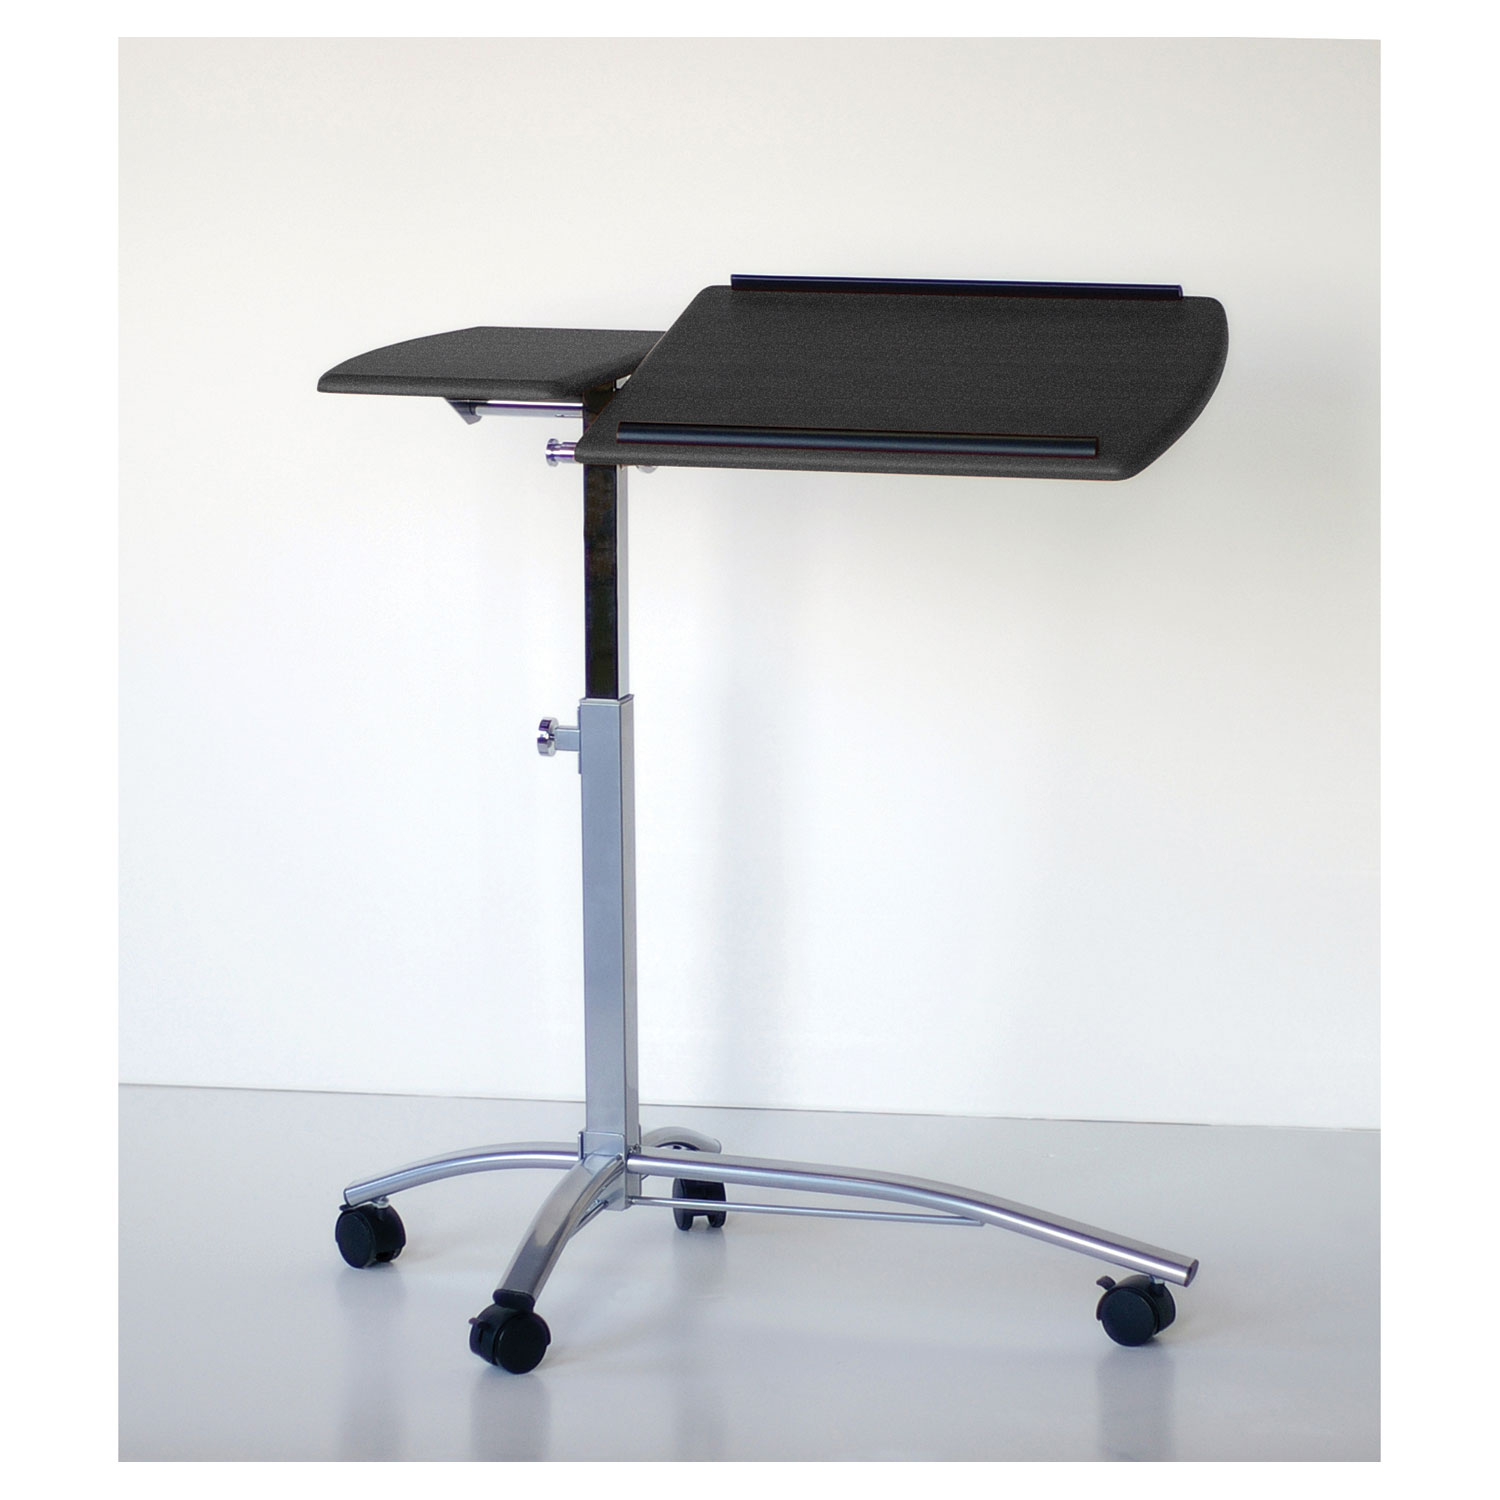 friendly office desk mayline napoli side furniture used l img high budget reception quality by